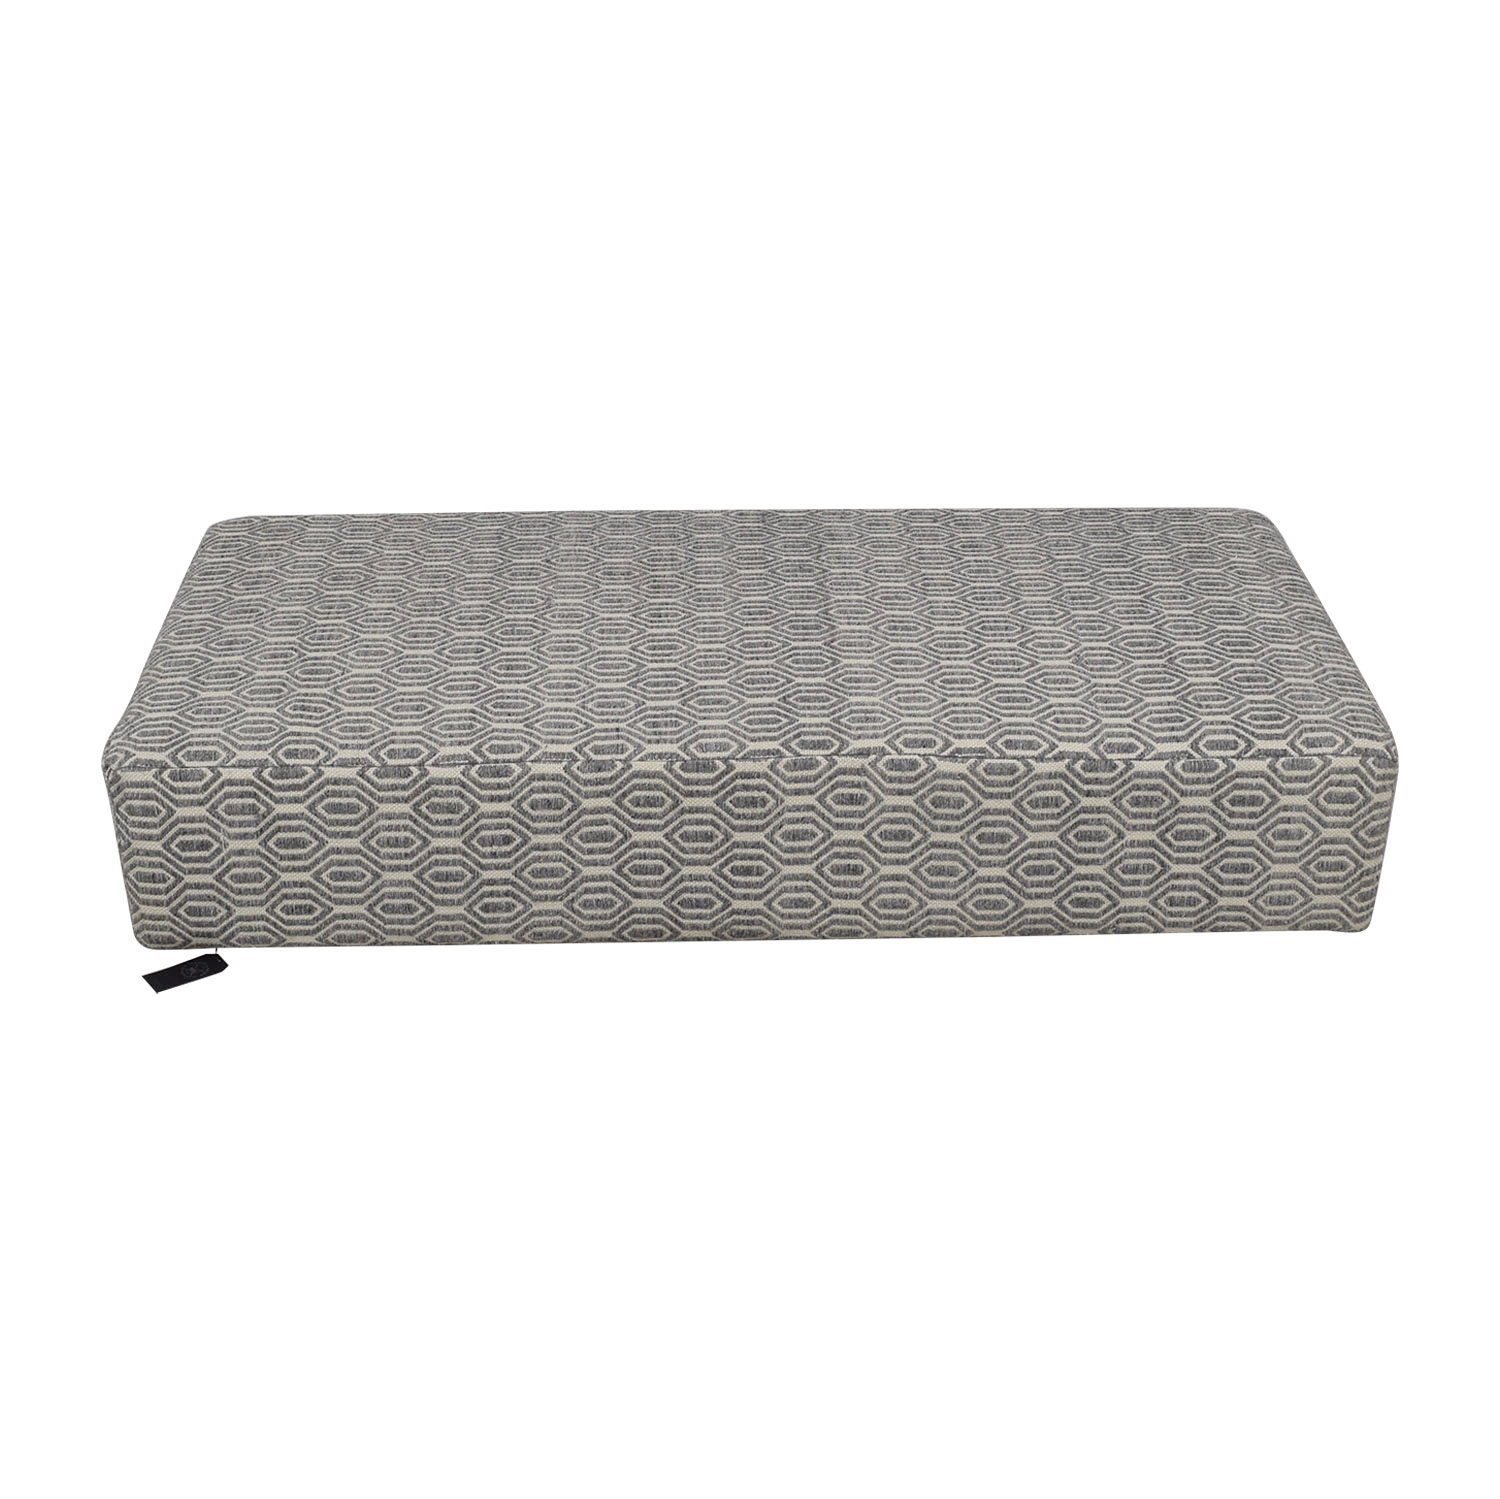 buy Manor and Mews Grey and White Floor Sofa Manor and Mews